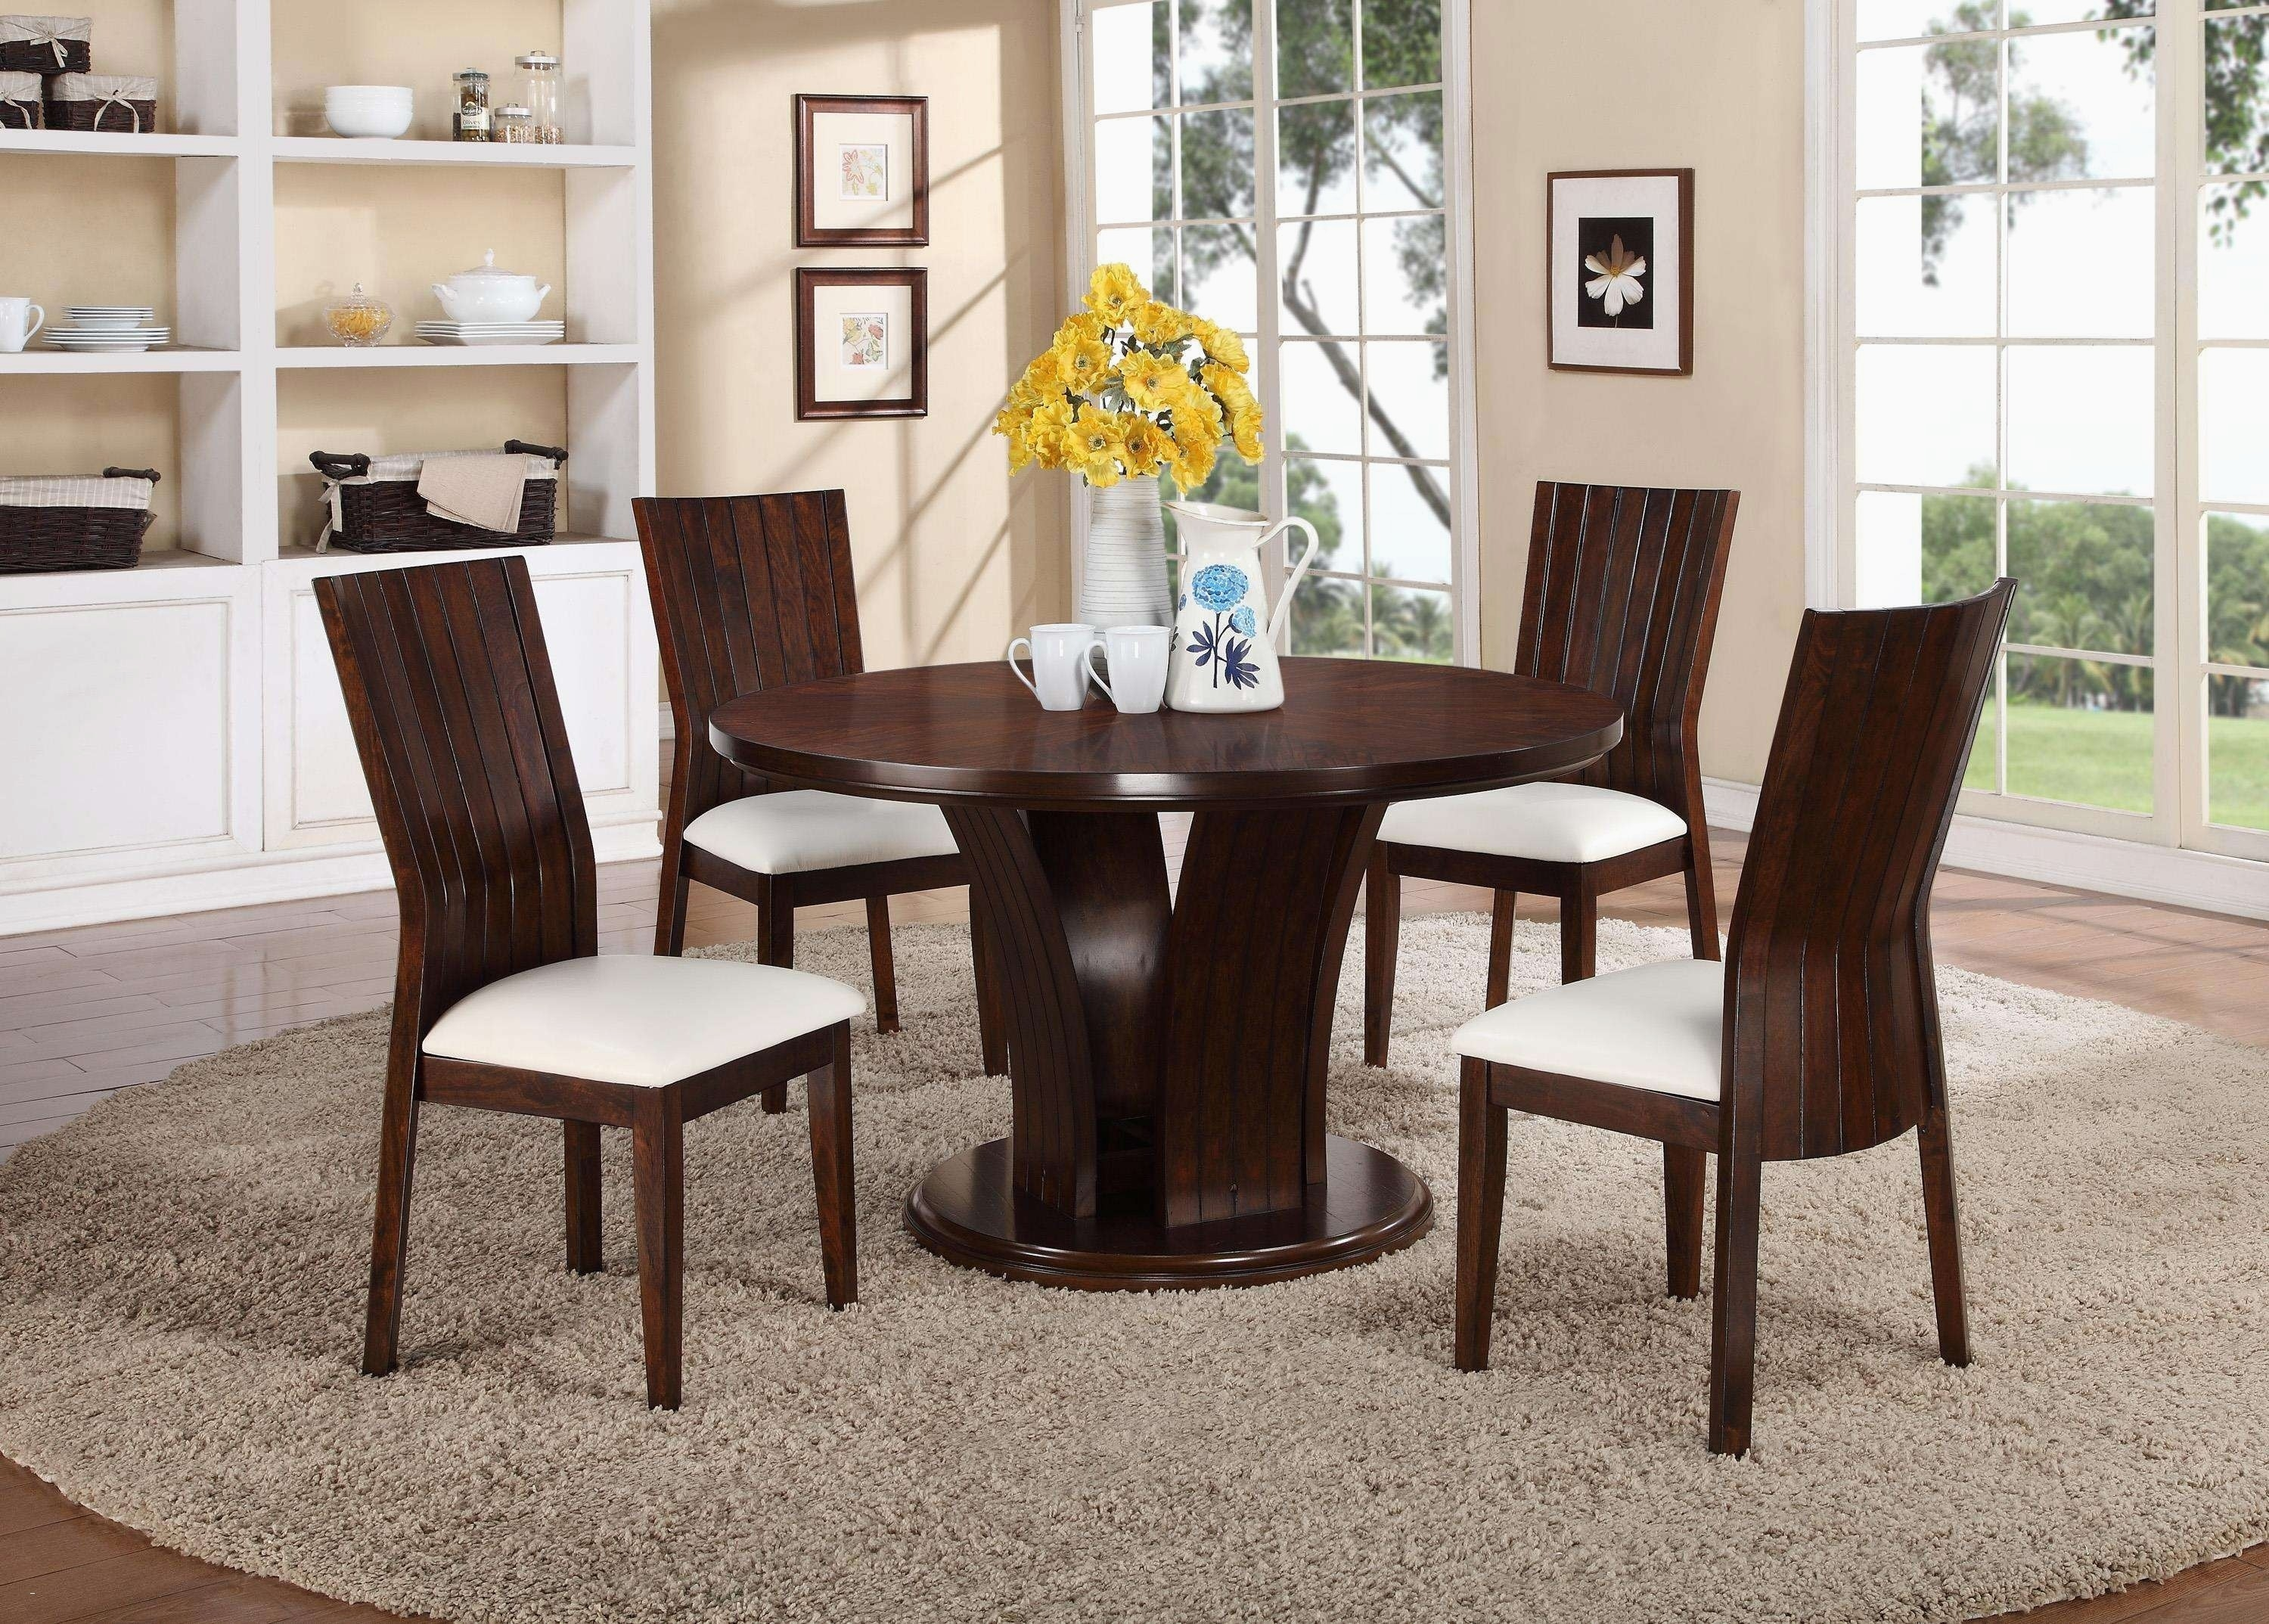 Craftsman Style Dining Room Furniture Inspirationa 6 Seat Round For Most Popular Craftsman Round Dining Tables (Image 5 of 20)